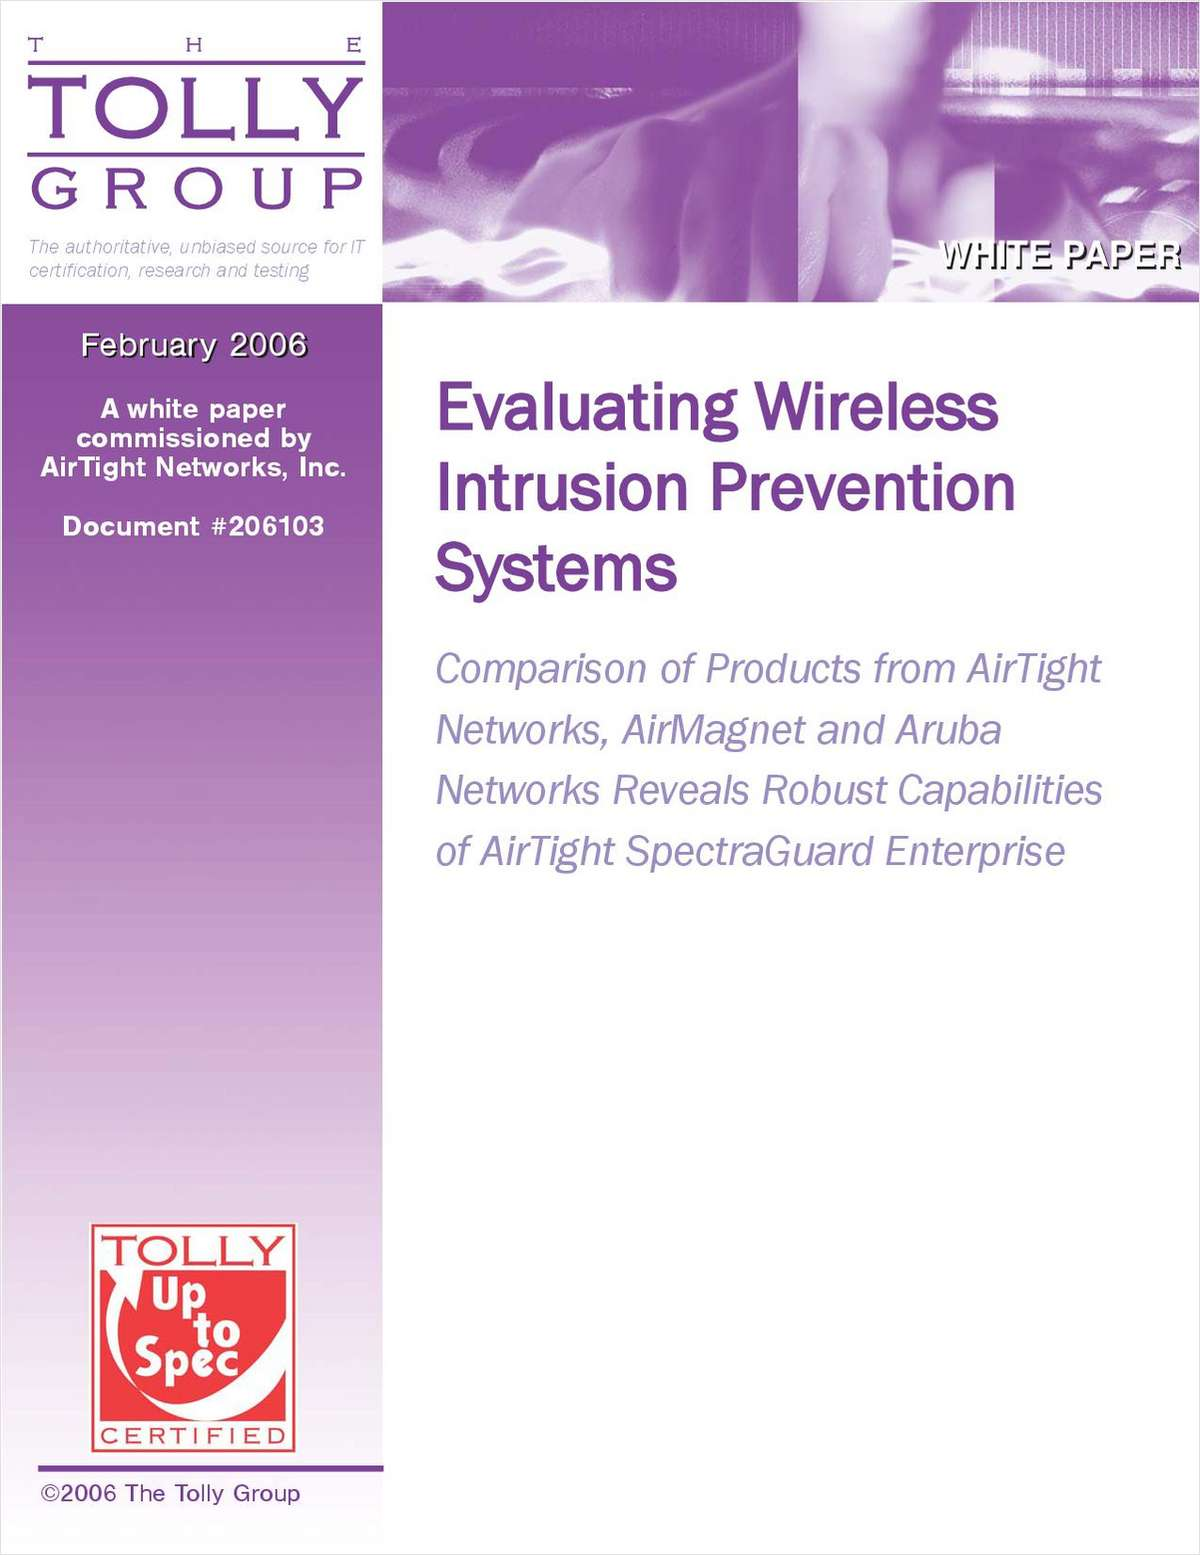 The Tolly Group: Benchmarking Strategies for Wireless Intrusion Prevention